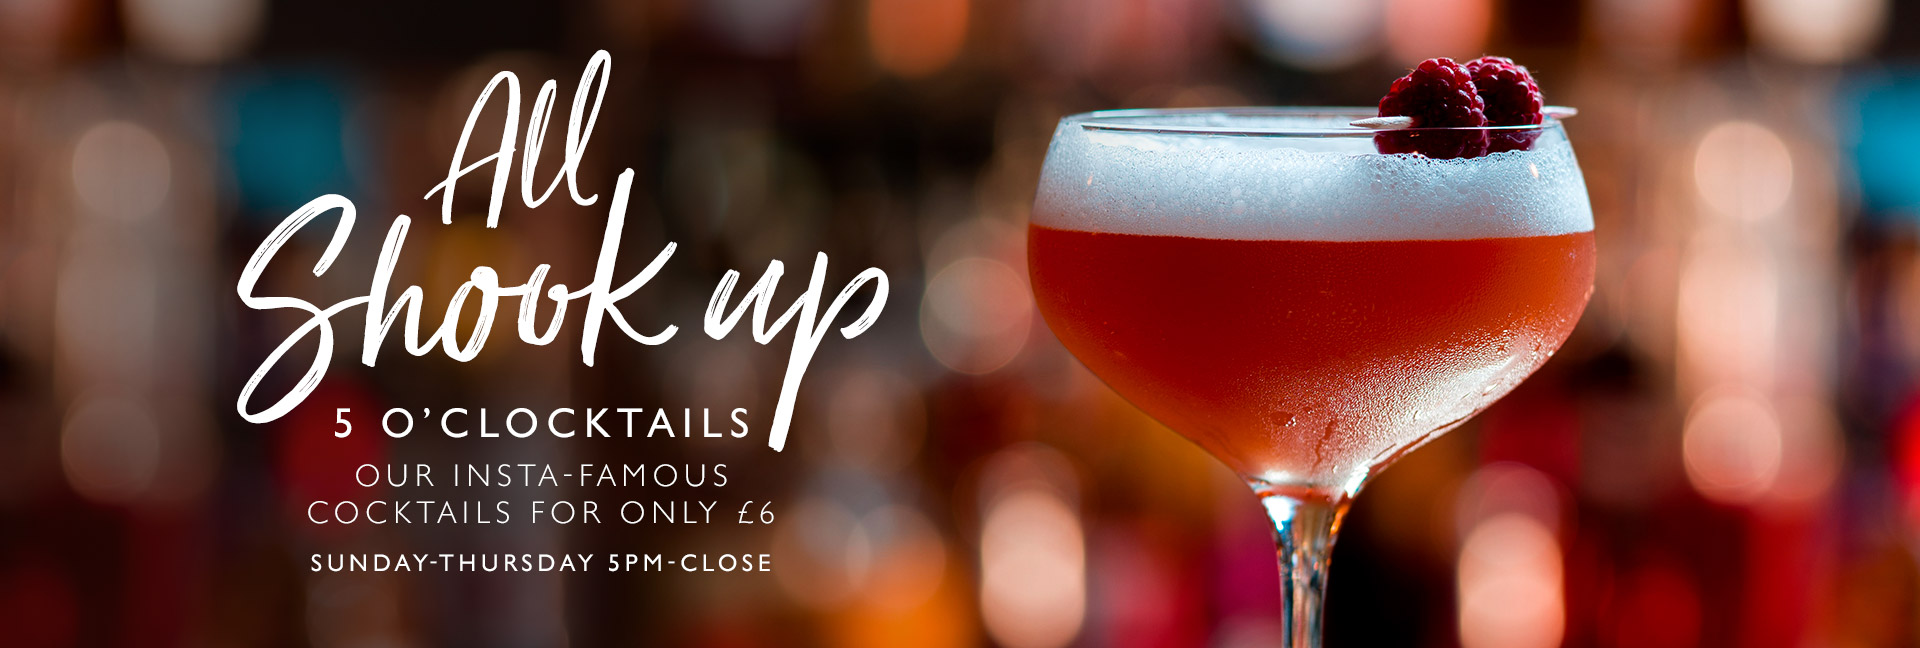 5 O'clocktails at All Bar One Bham T1 Landside - Book now